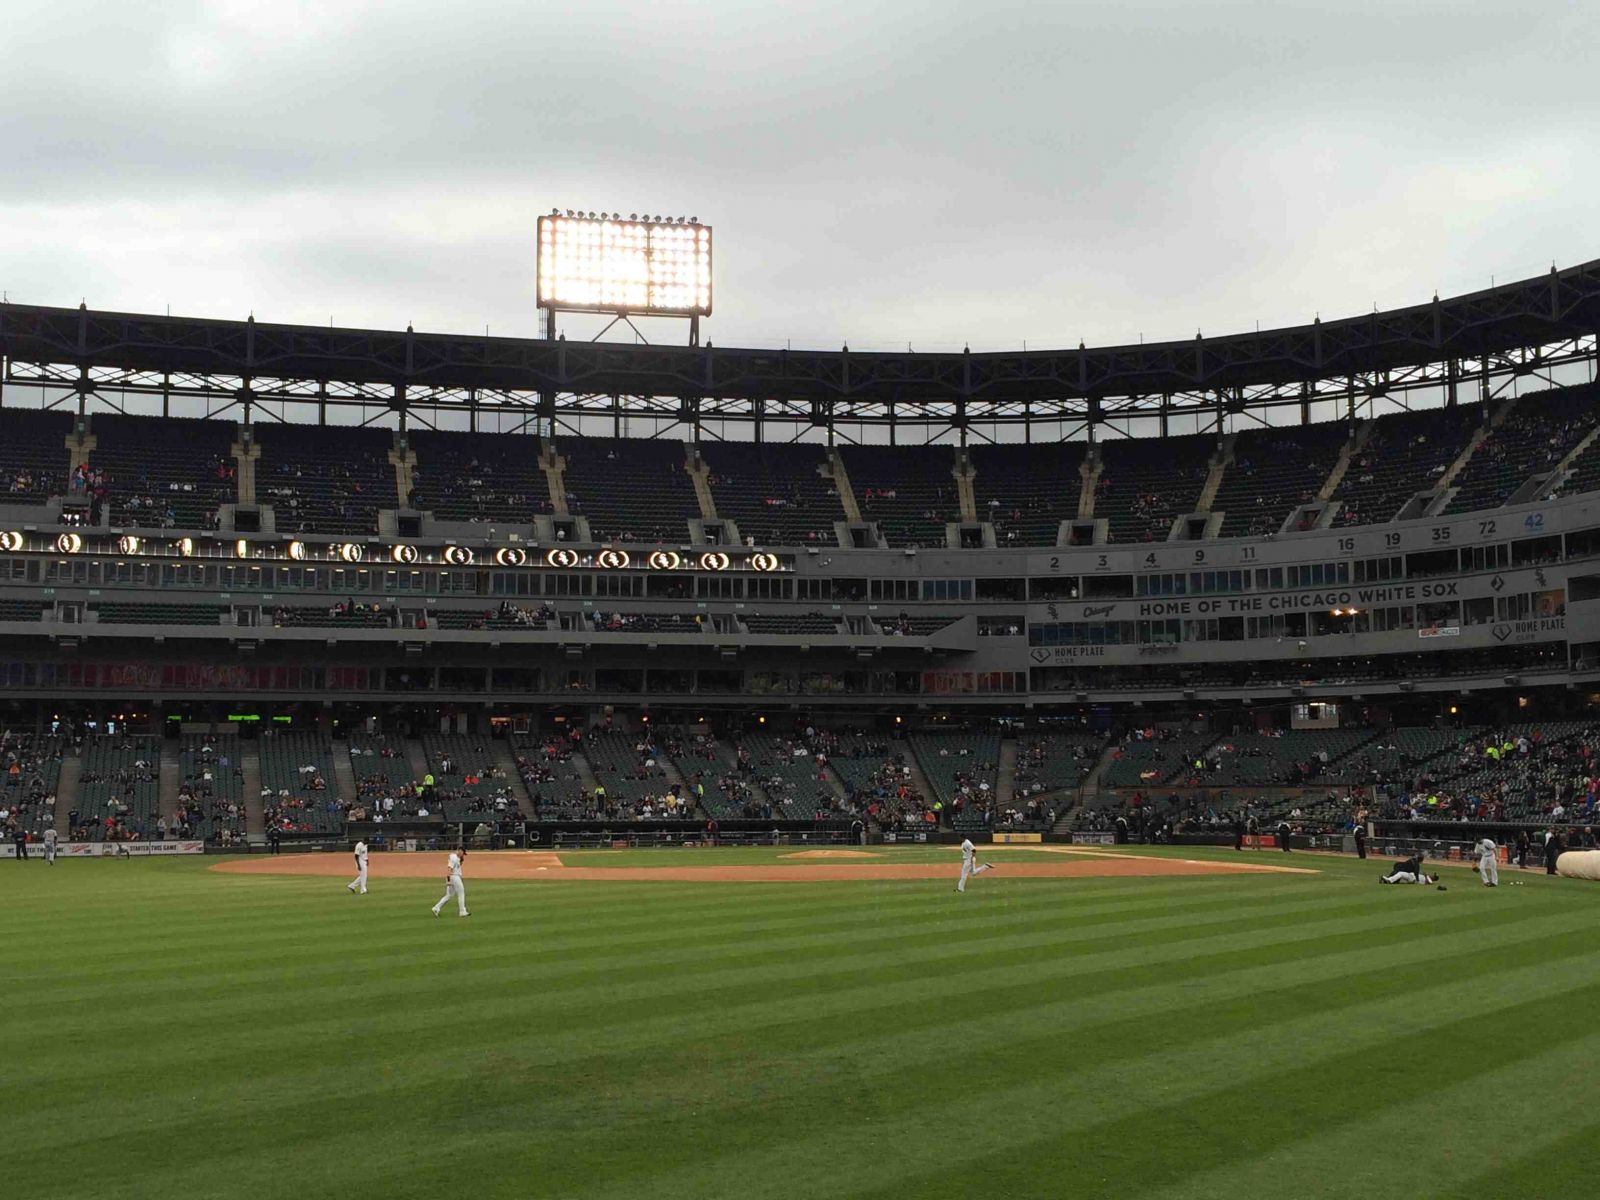 Seat View for Guaranteed Rate Field Section 159, Row 1, Seat 9